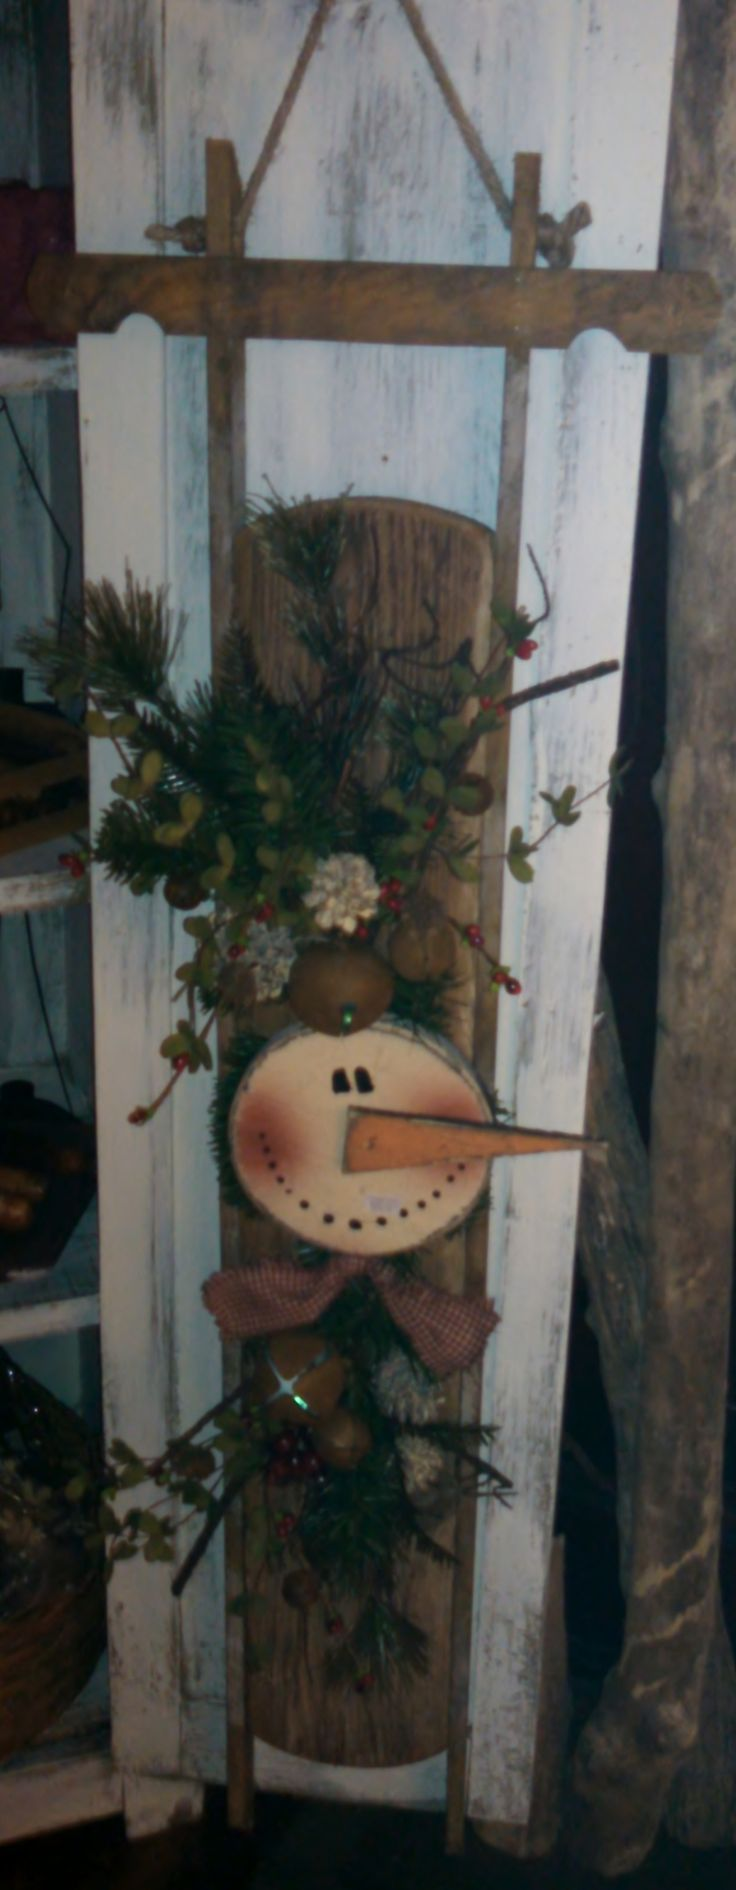 Tobacco lathe sled with prim snowman and greenery.